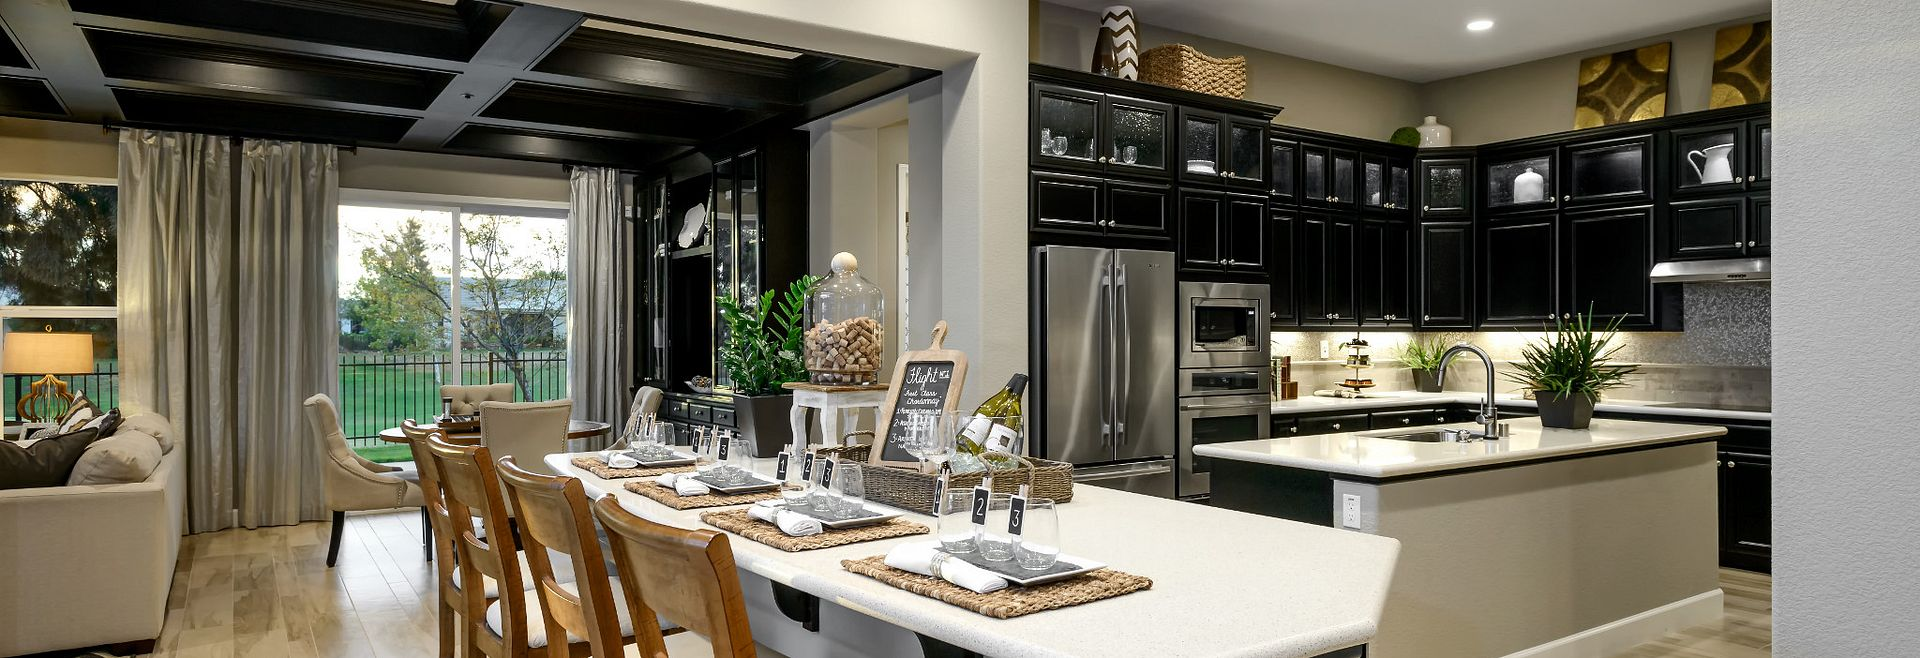 Trilogy Rio Vista Vensa Kitchen